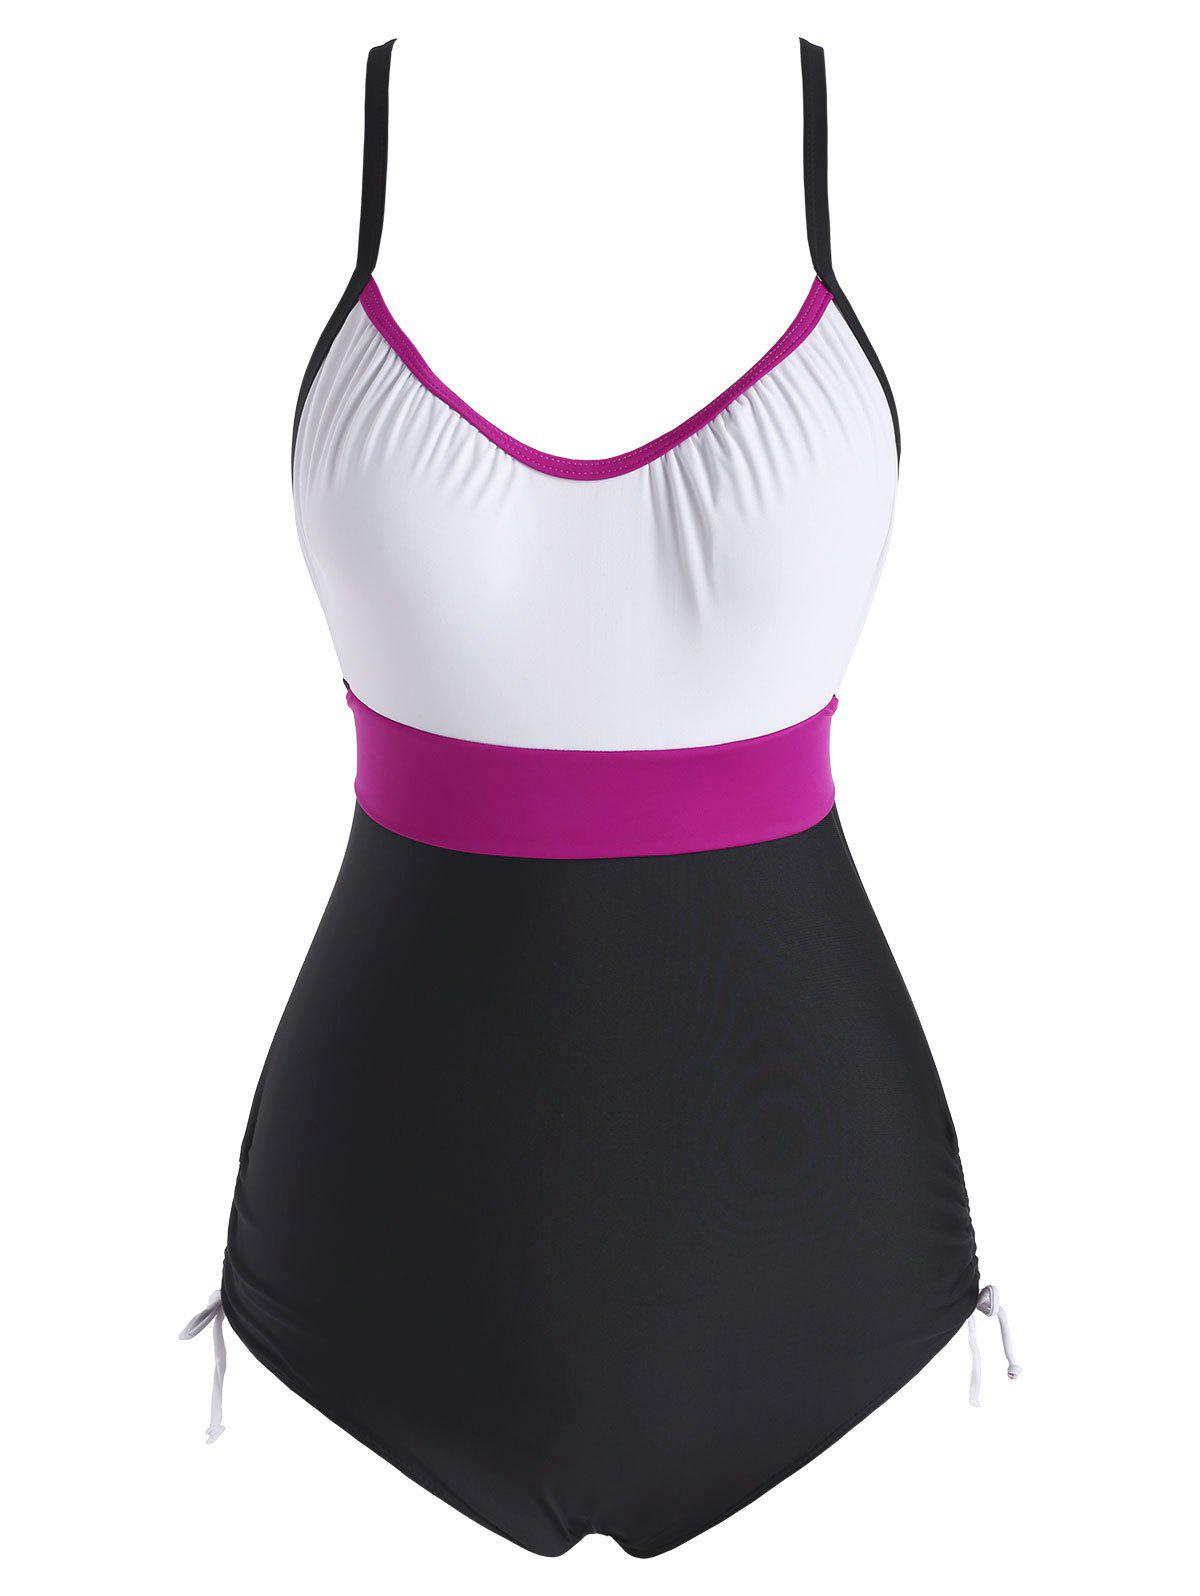 New Colorblock Cinched Back Knot One-piece Swimsuit